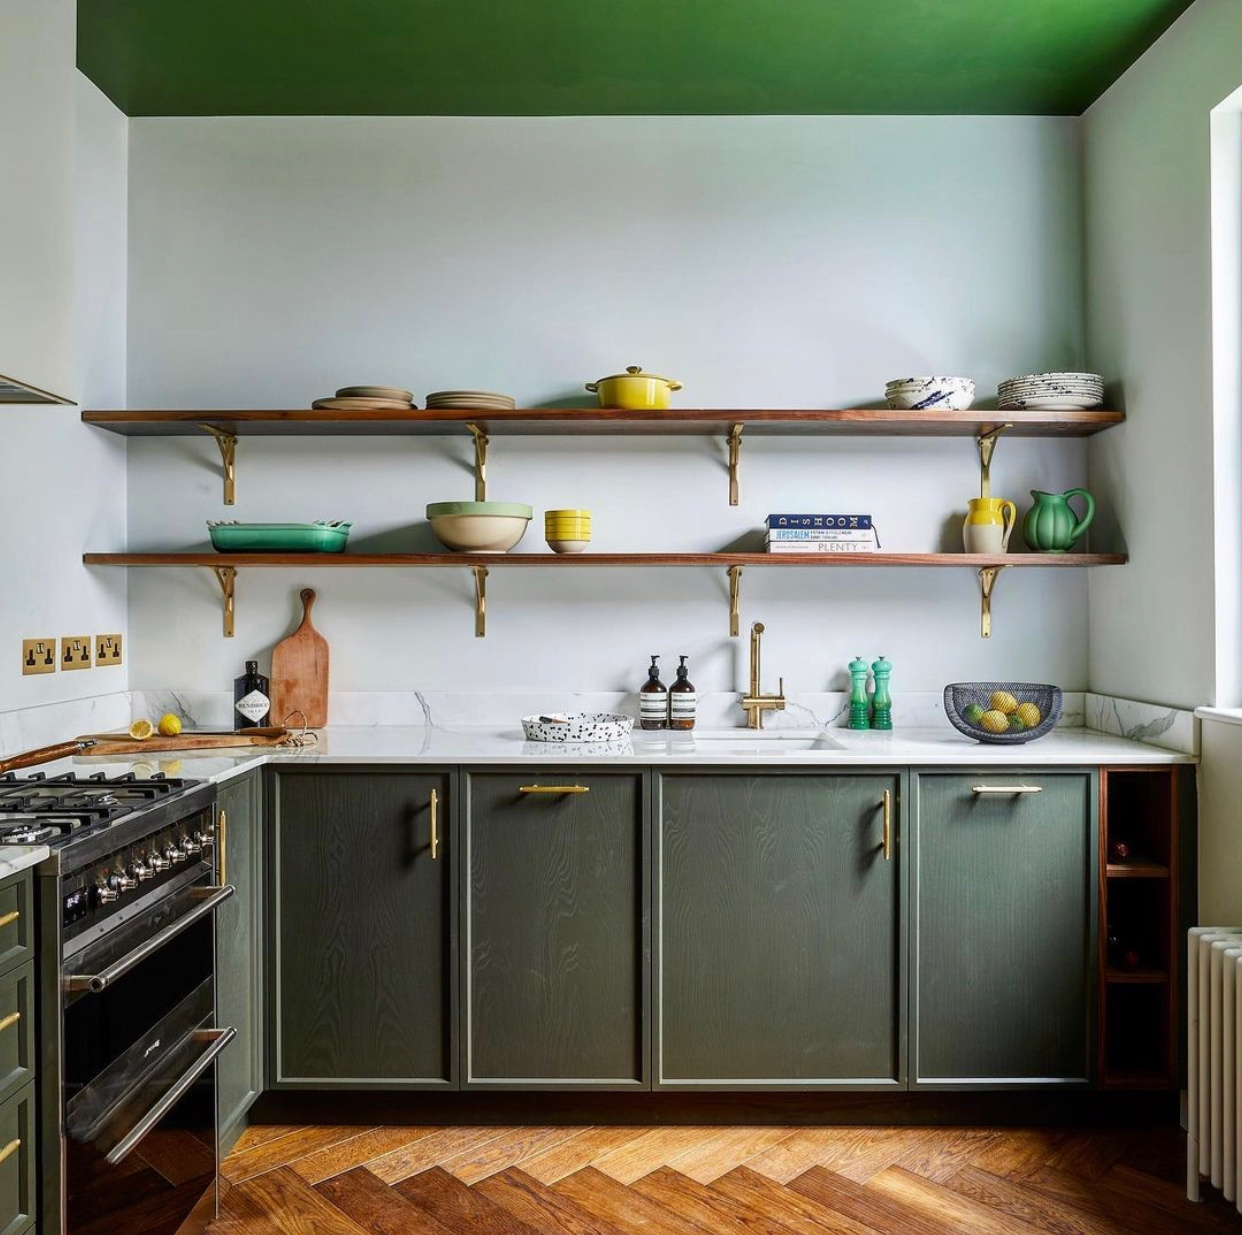 green kitchen by huntsmore design image by snook photograph